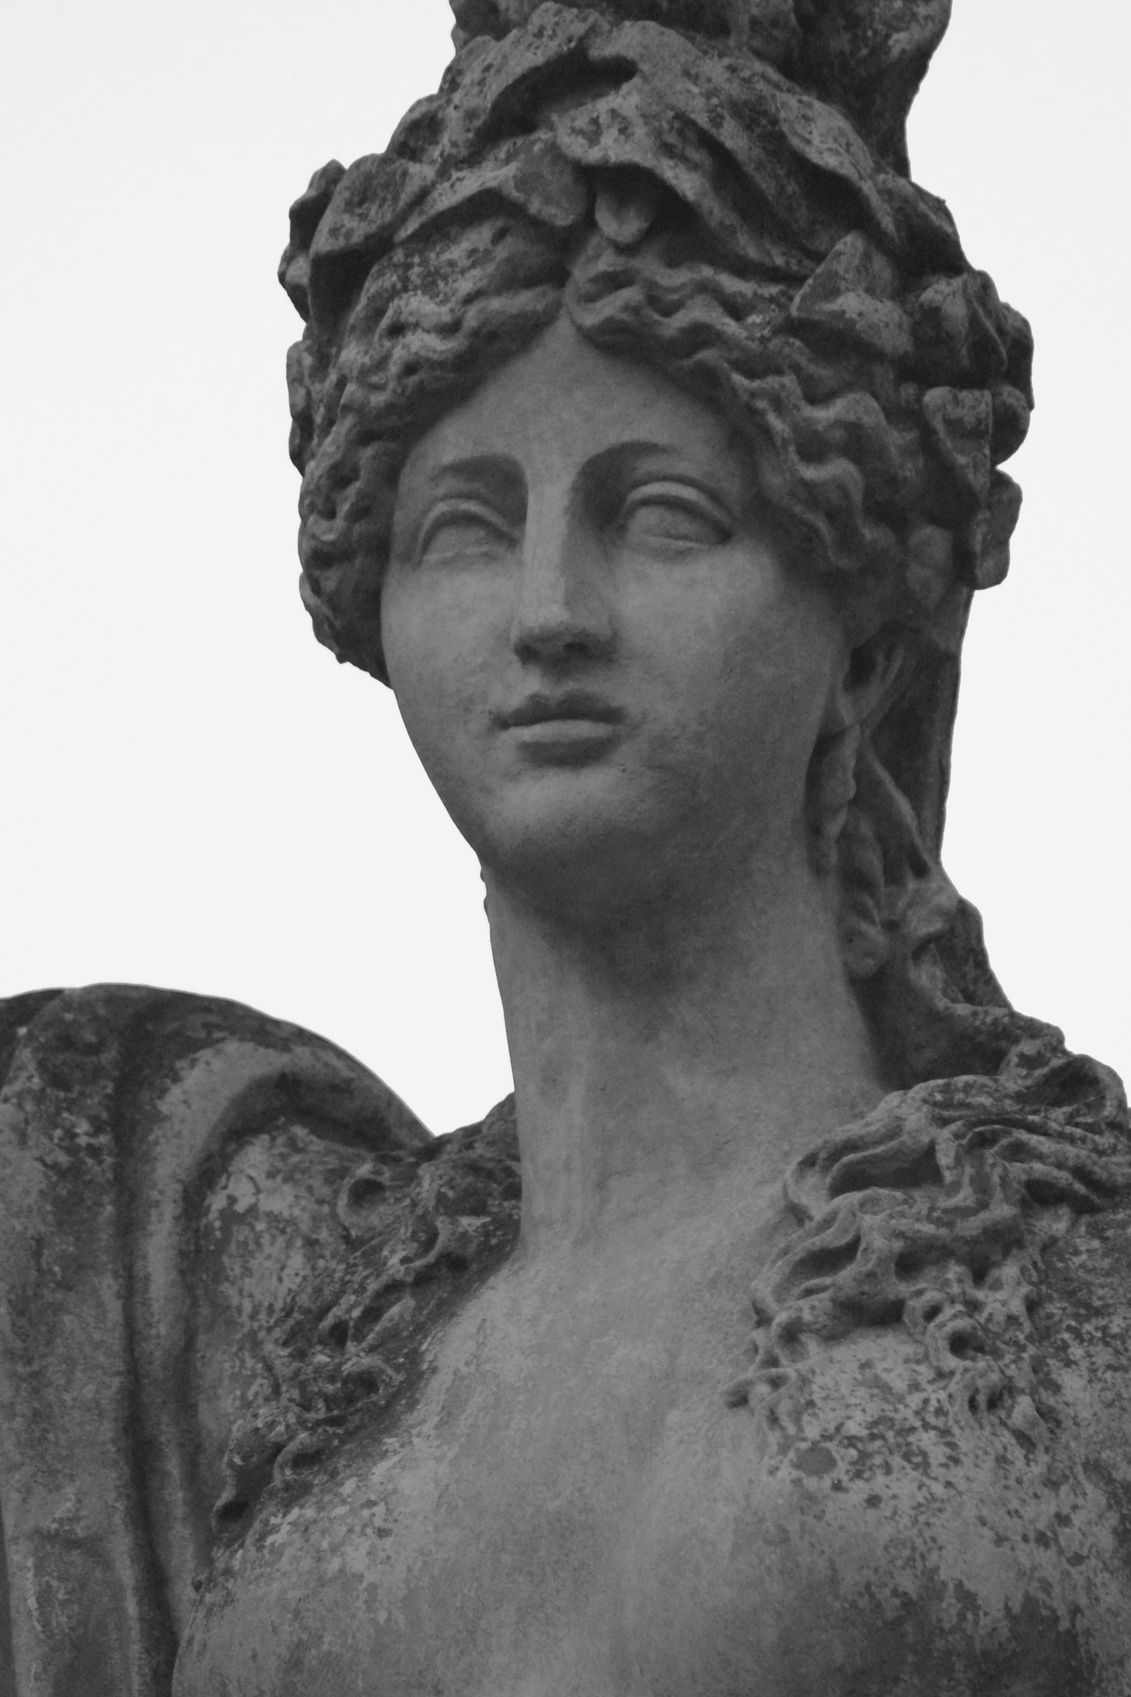 Hera is the oldest daughter of Kronos and Rei. Hera is the sister and wife of Zeus, with whom she was 300 years in a secret marriage, until he openly declared her his wife and queen of the gods.